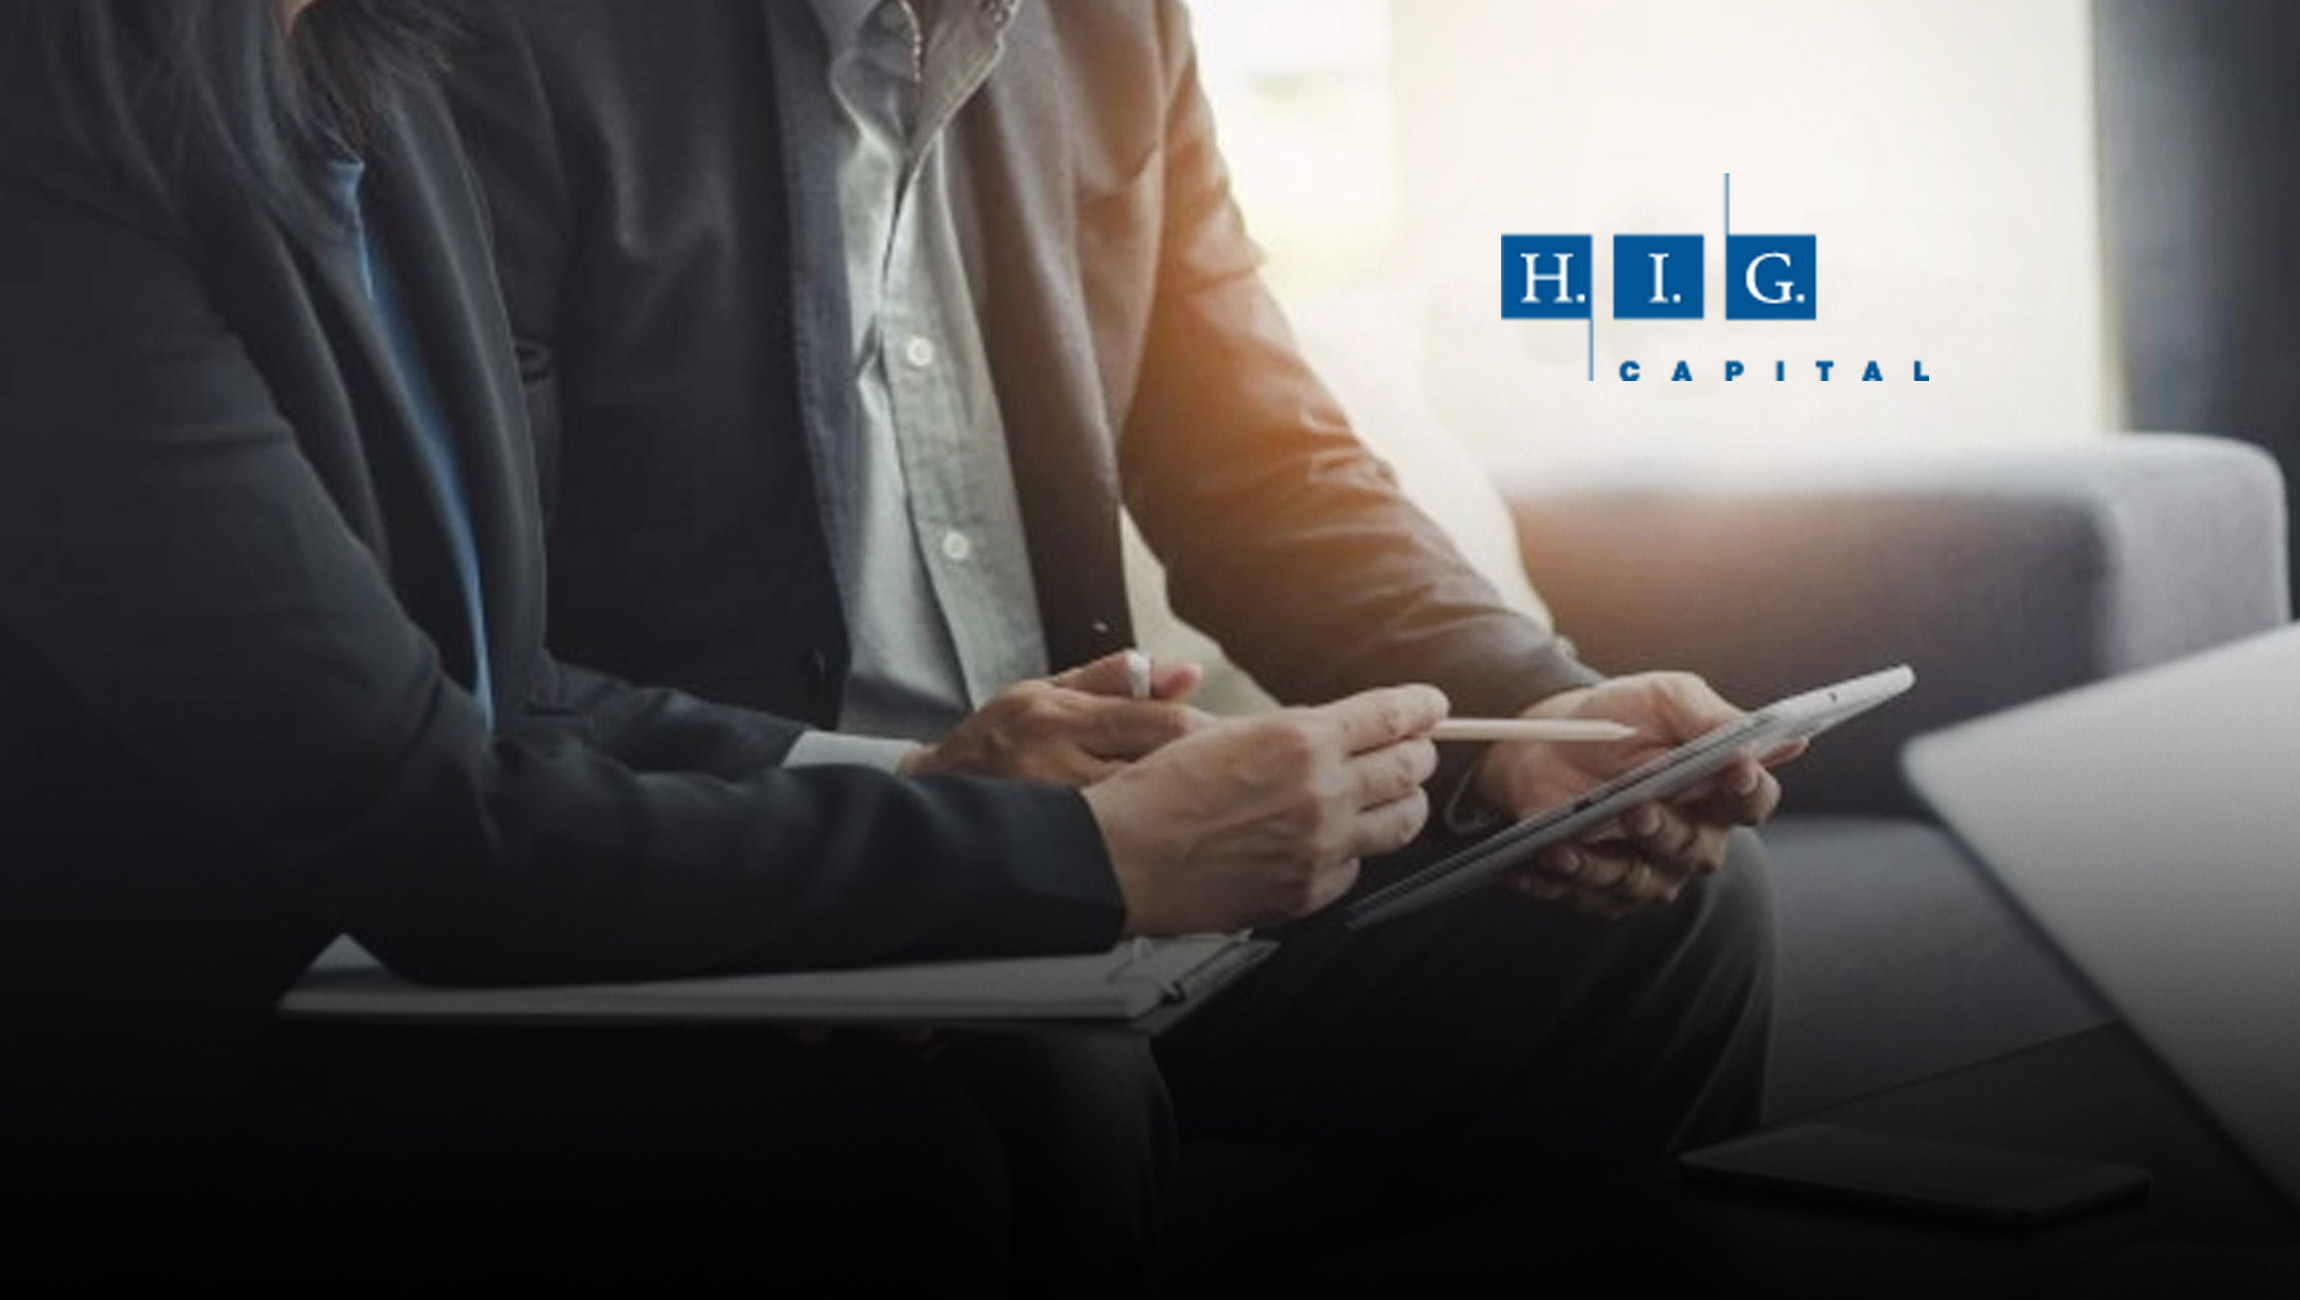 H.I.G. Capital Signs Definitive Agreement To Acquire Hibu 21